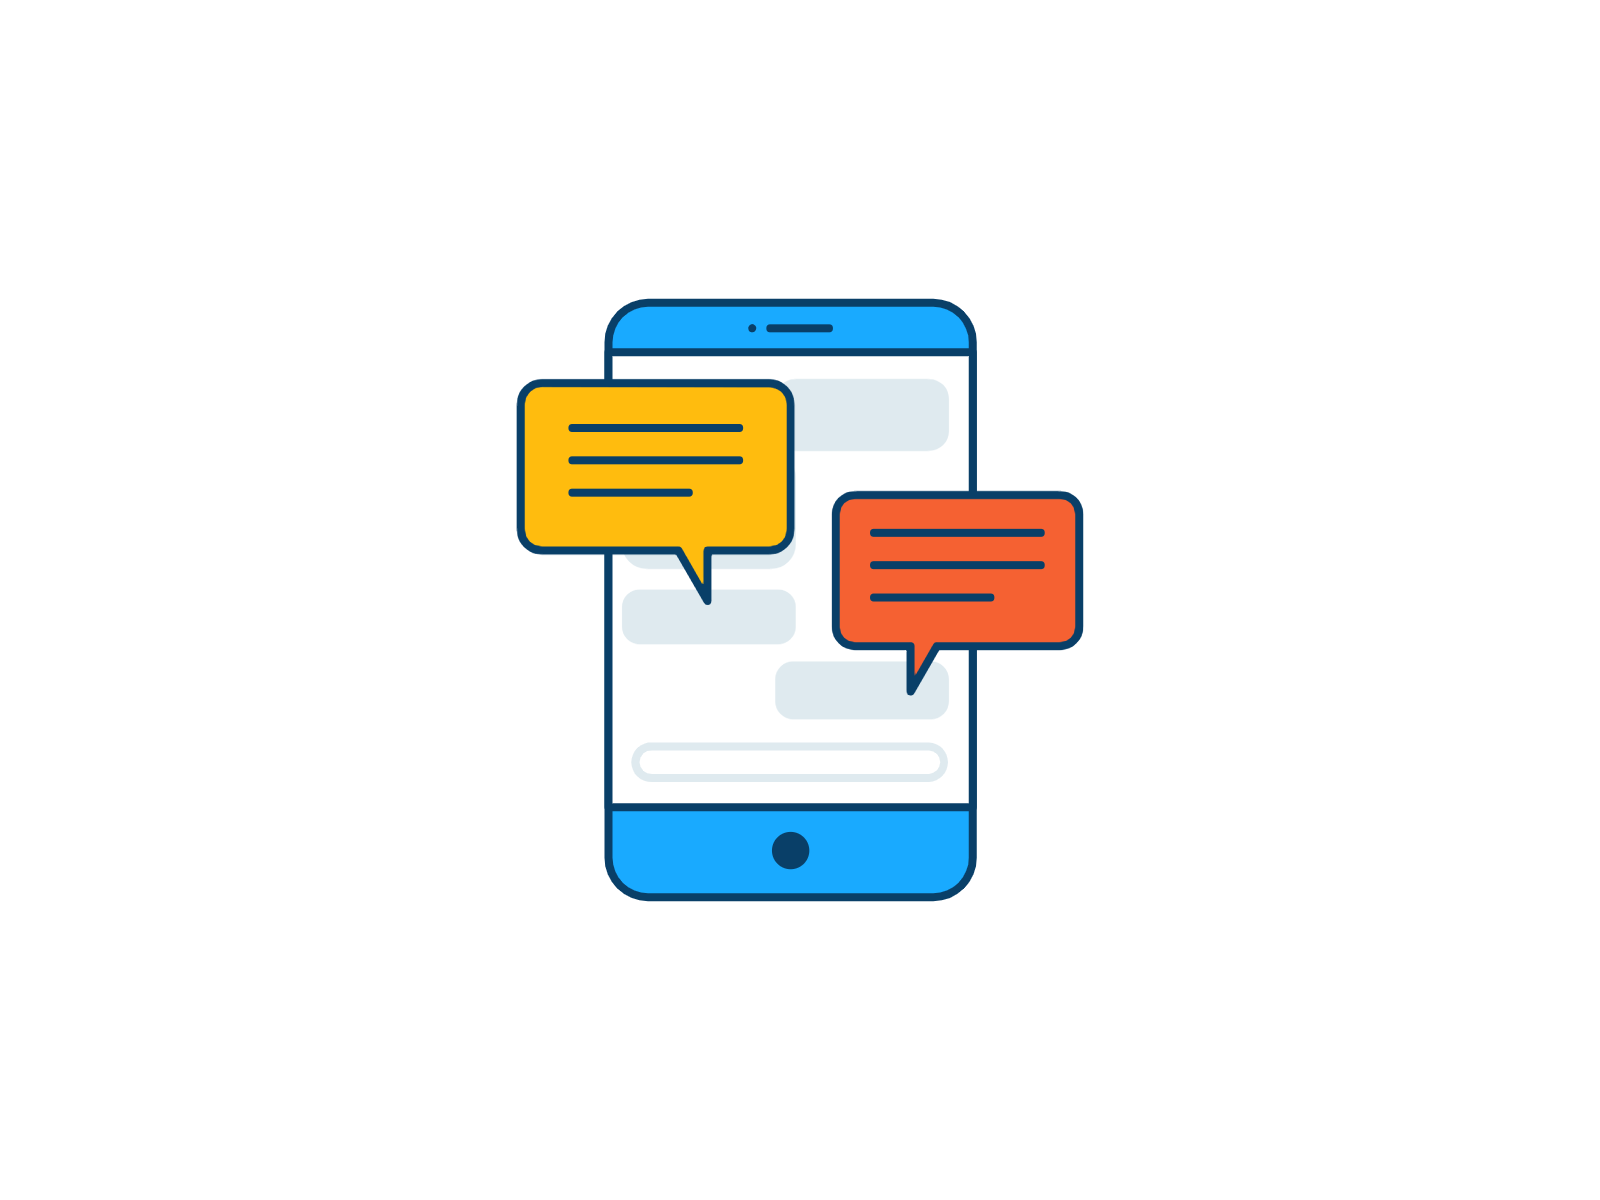 Start creating your Chatbots today